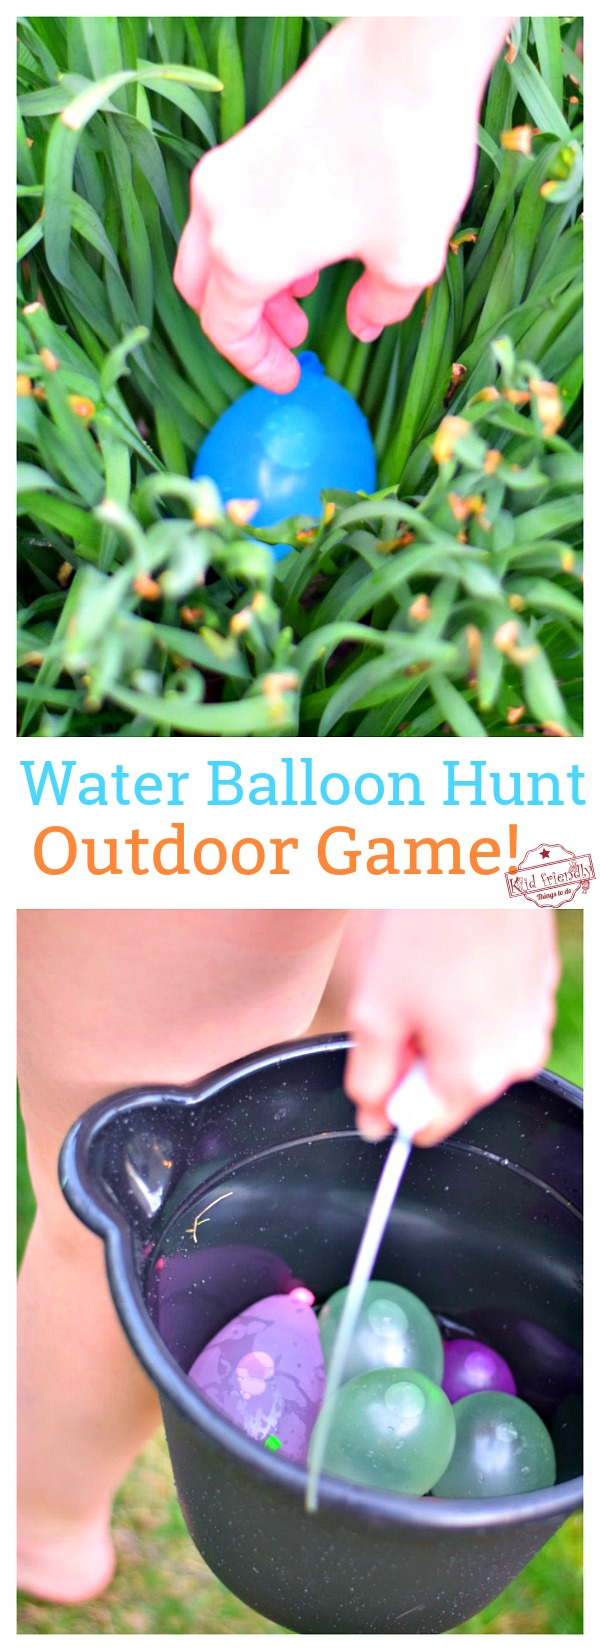 Playing Water Balloon Hunt a fun outdoor game for kids